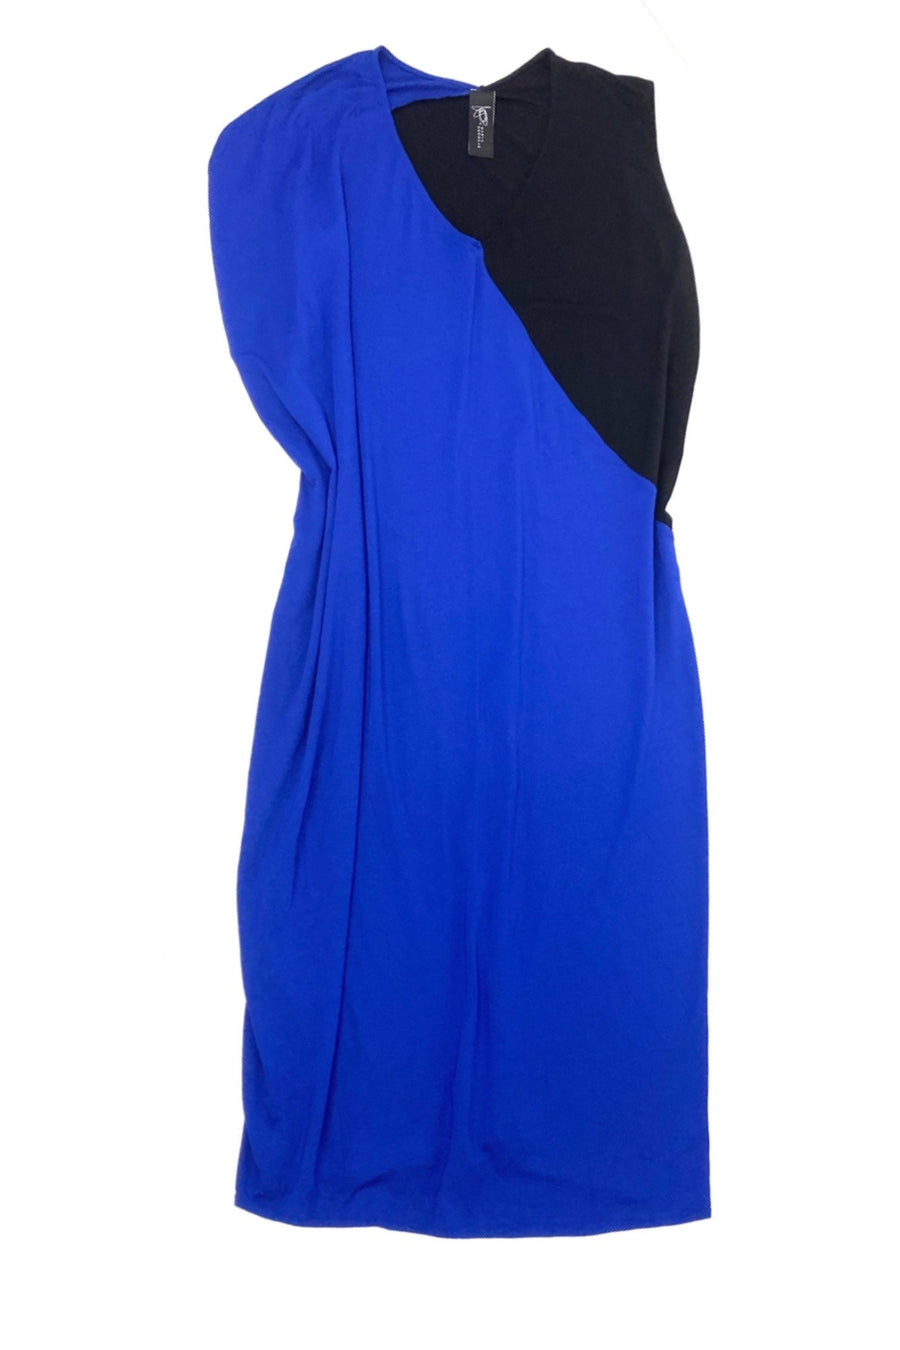 Zero + Maria Cornejo Cobalt Black Jersey Dress | M/L